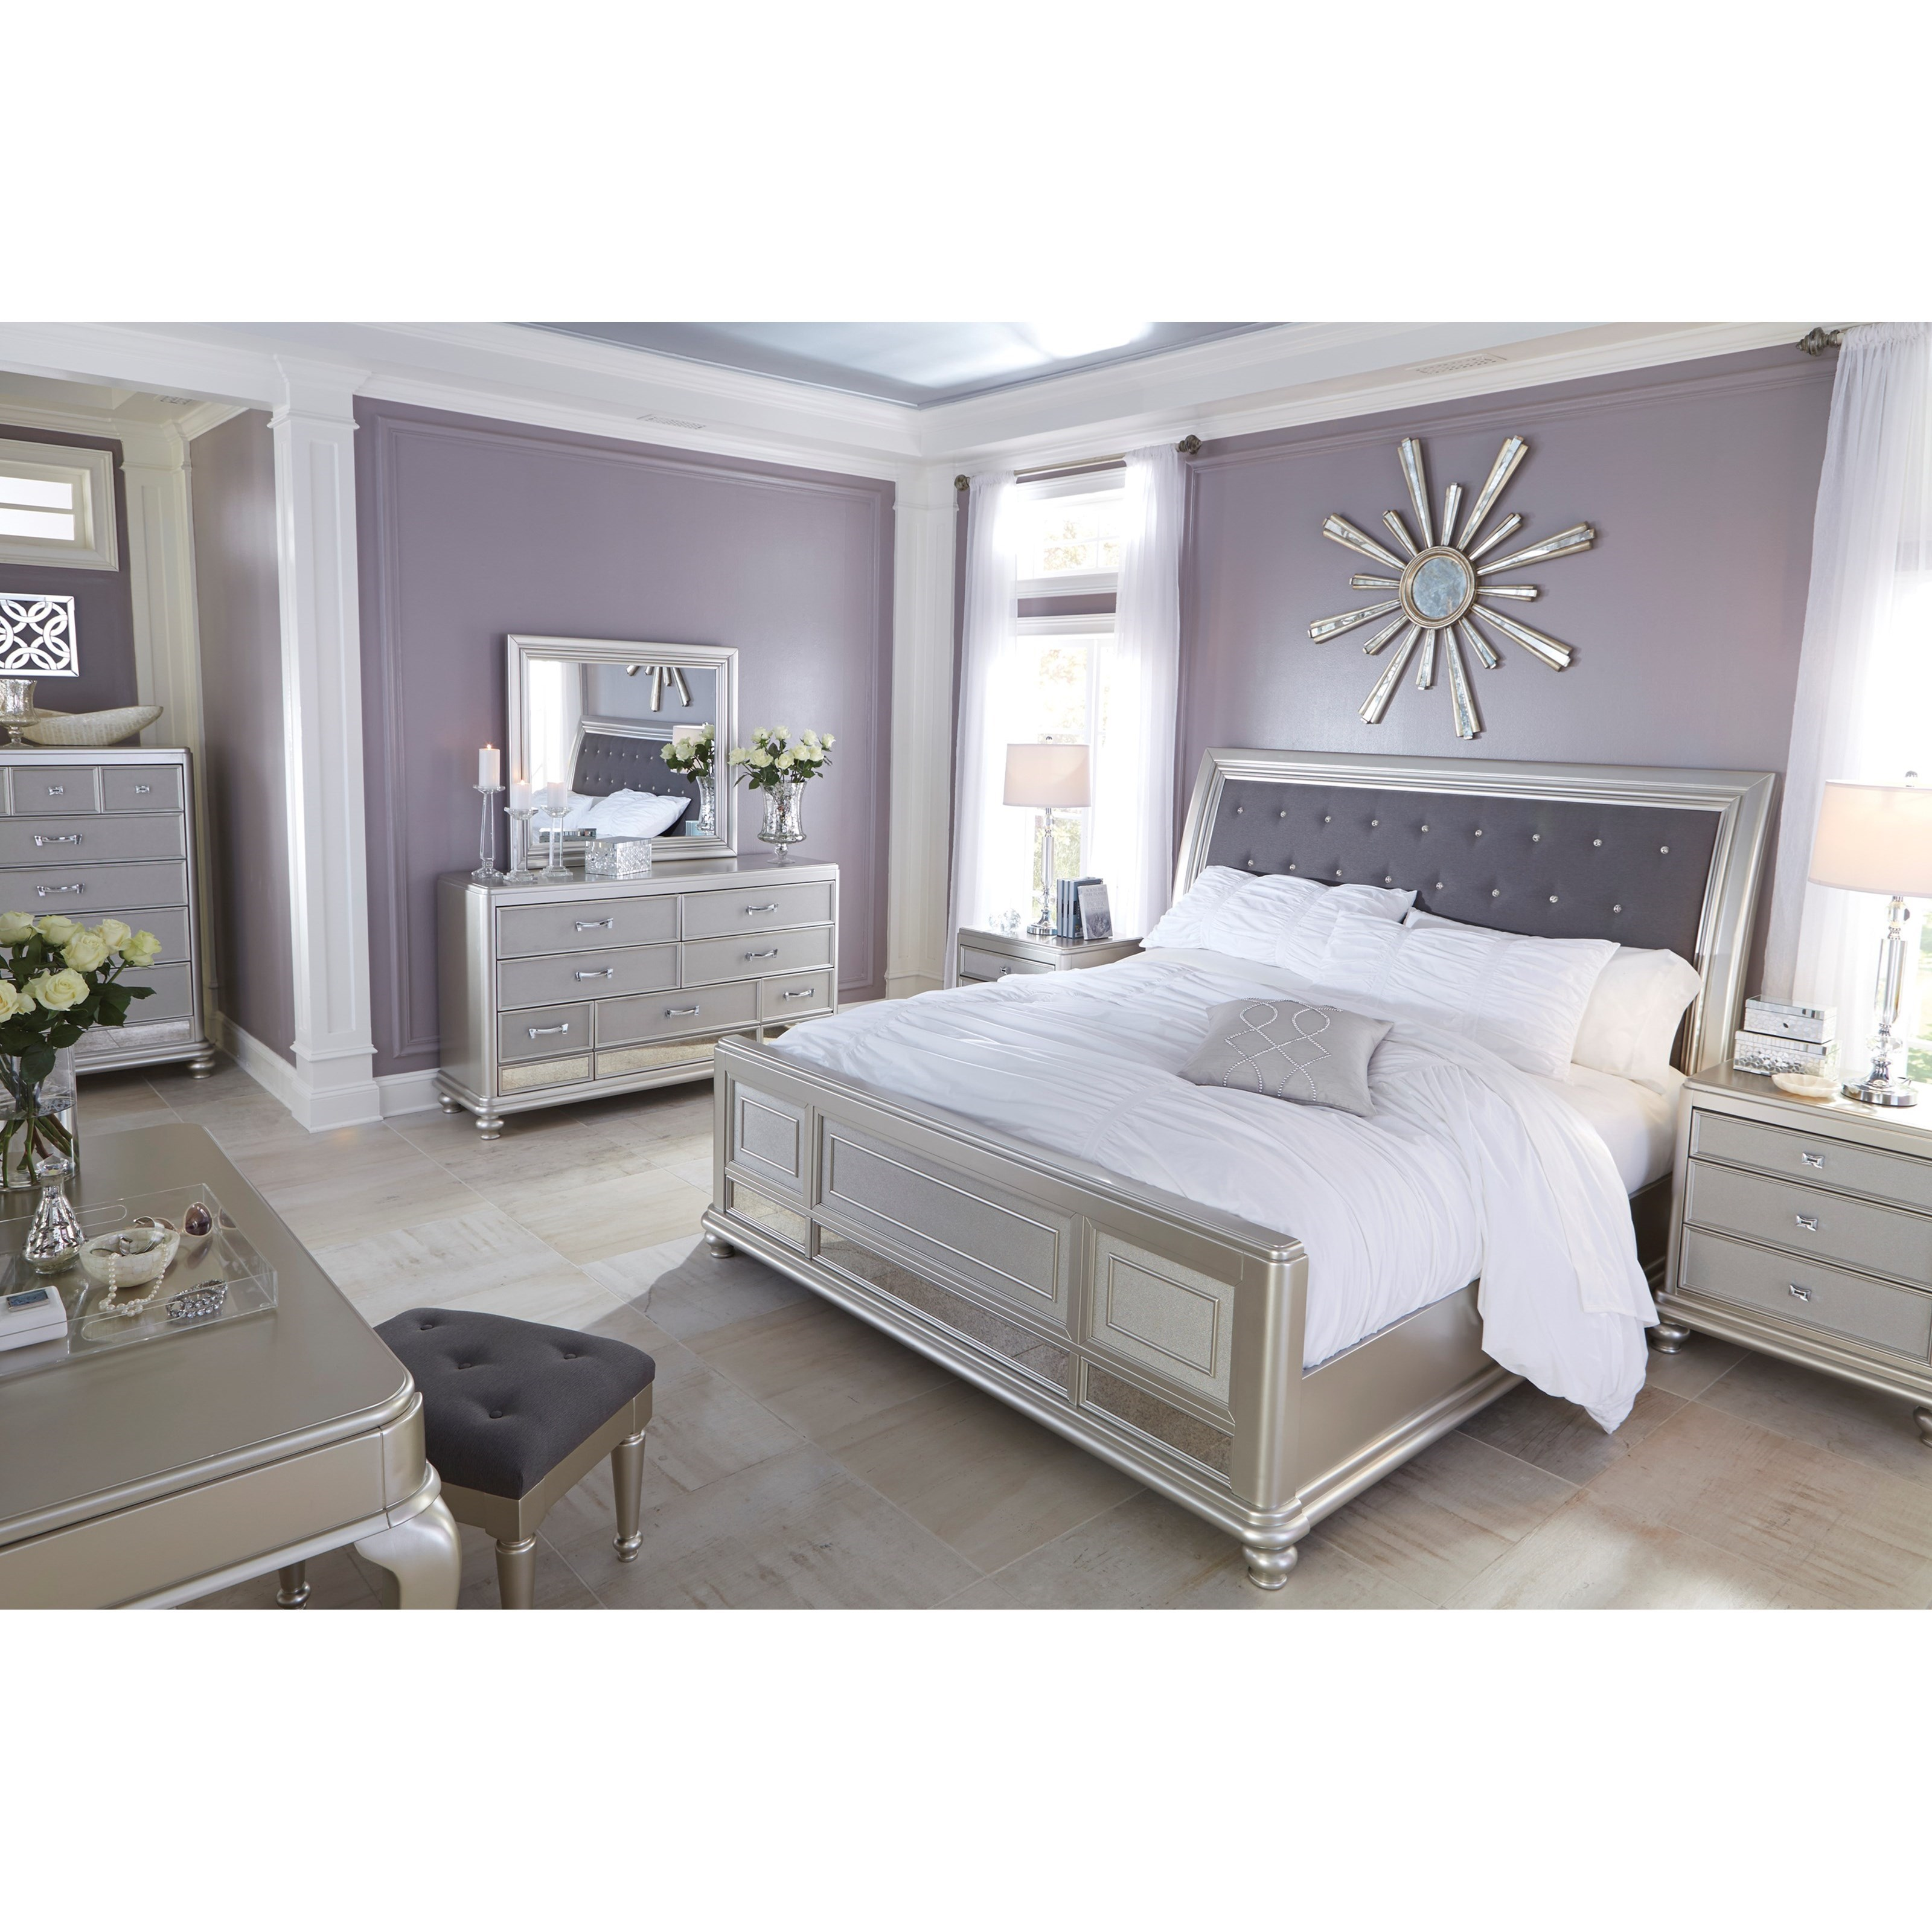 Queen Bed With Upholstered Sleigh Headboard And Silver